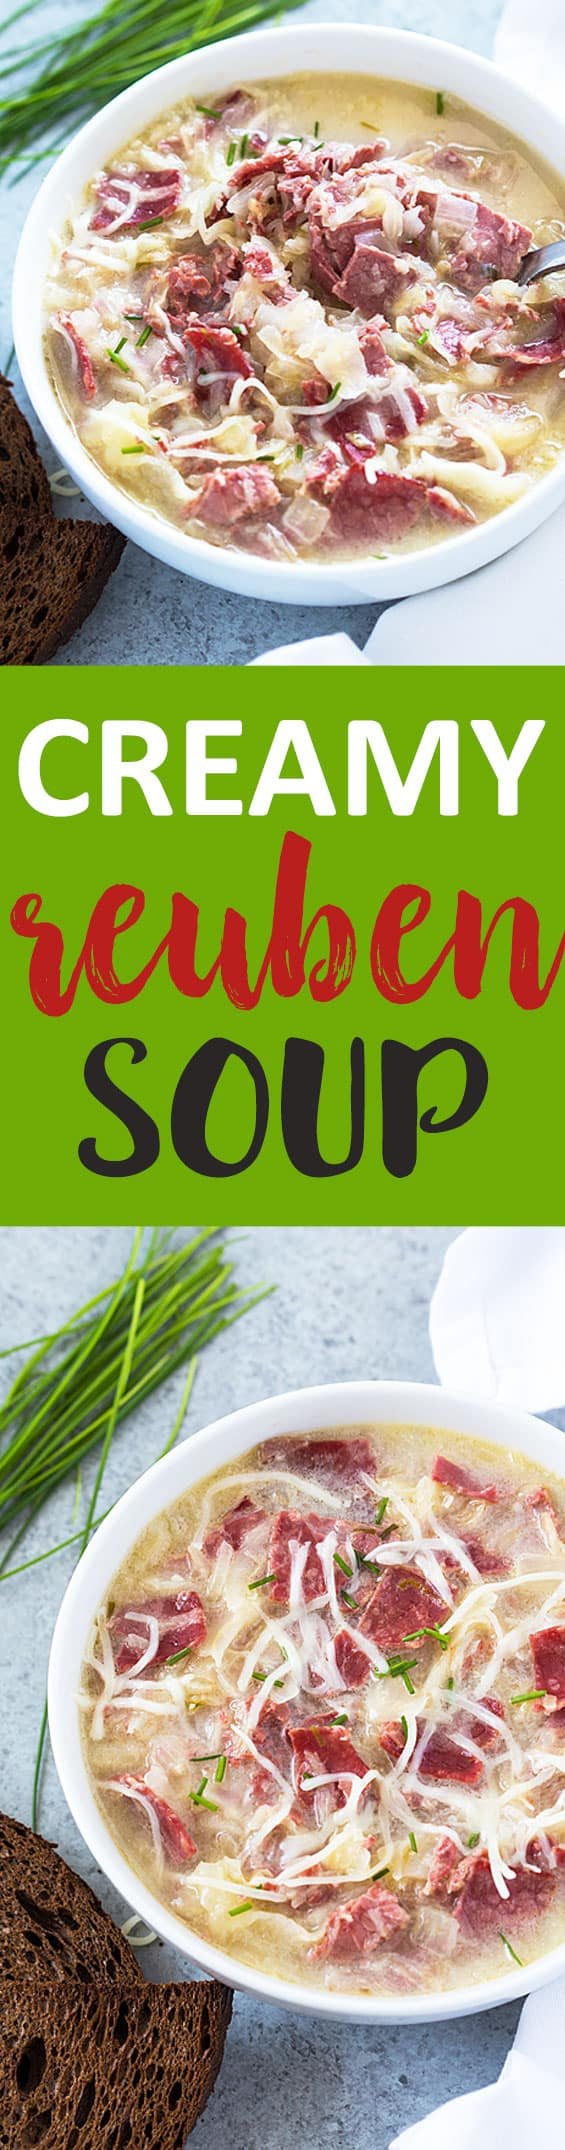 Two images of a bowl of soup.  Text in center says creamy Reuben soup.